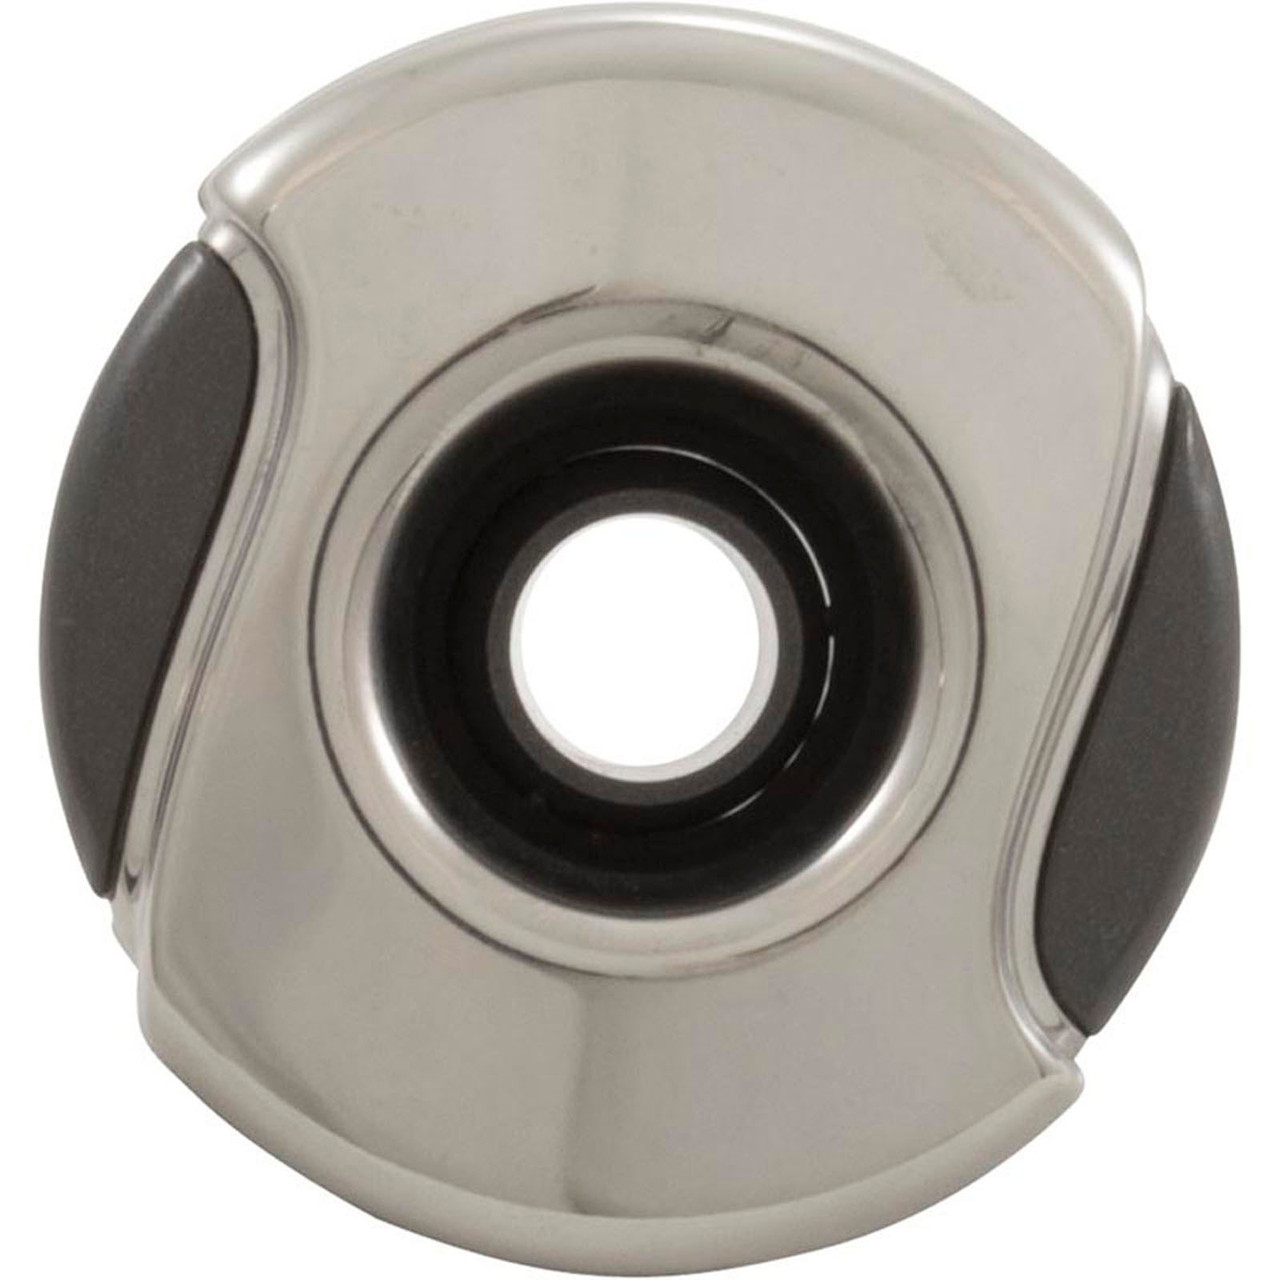 """CMP, Customer molded products, 23422-119-000, Jet Internal, 2"""", Typhoon 200,  Stainless Steel, Graphite Gray, 2"""", Wave face, Hot tub, spa"""